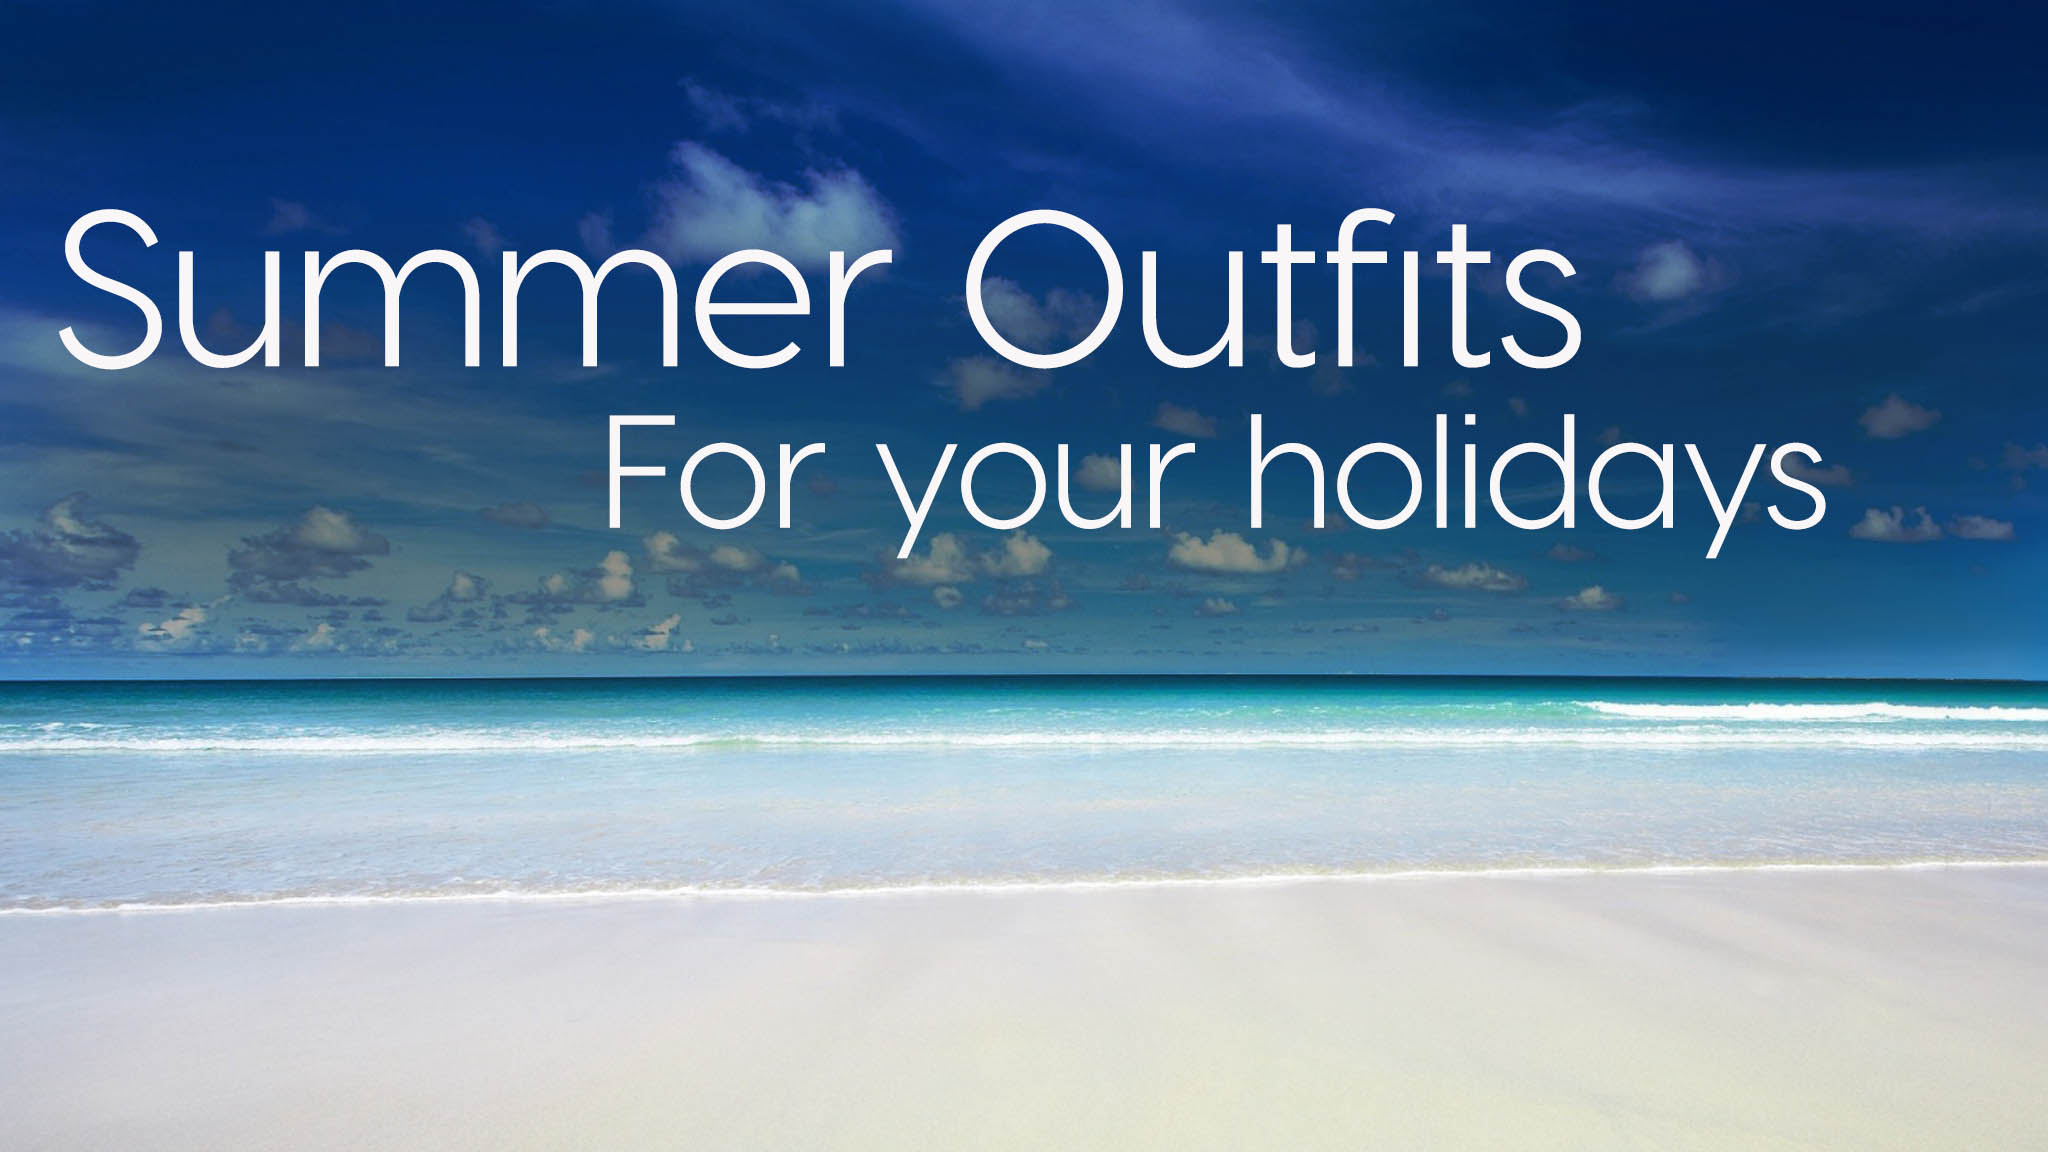 3 Summer Outfits for Island Vacations